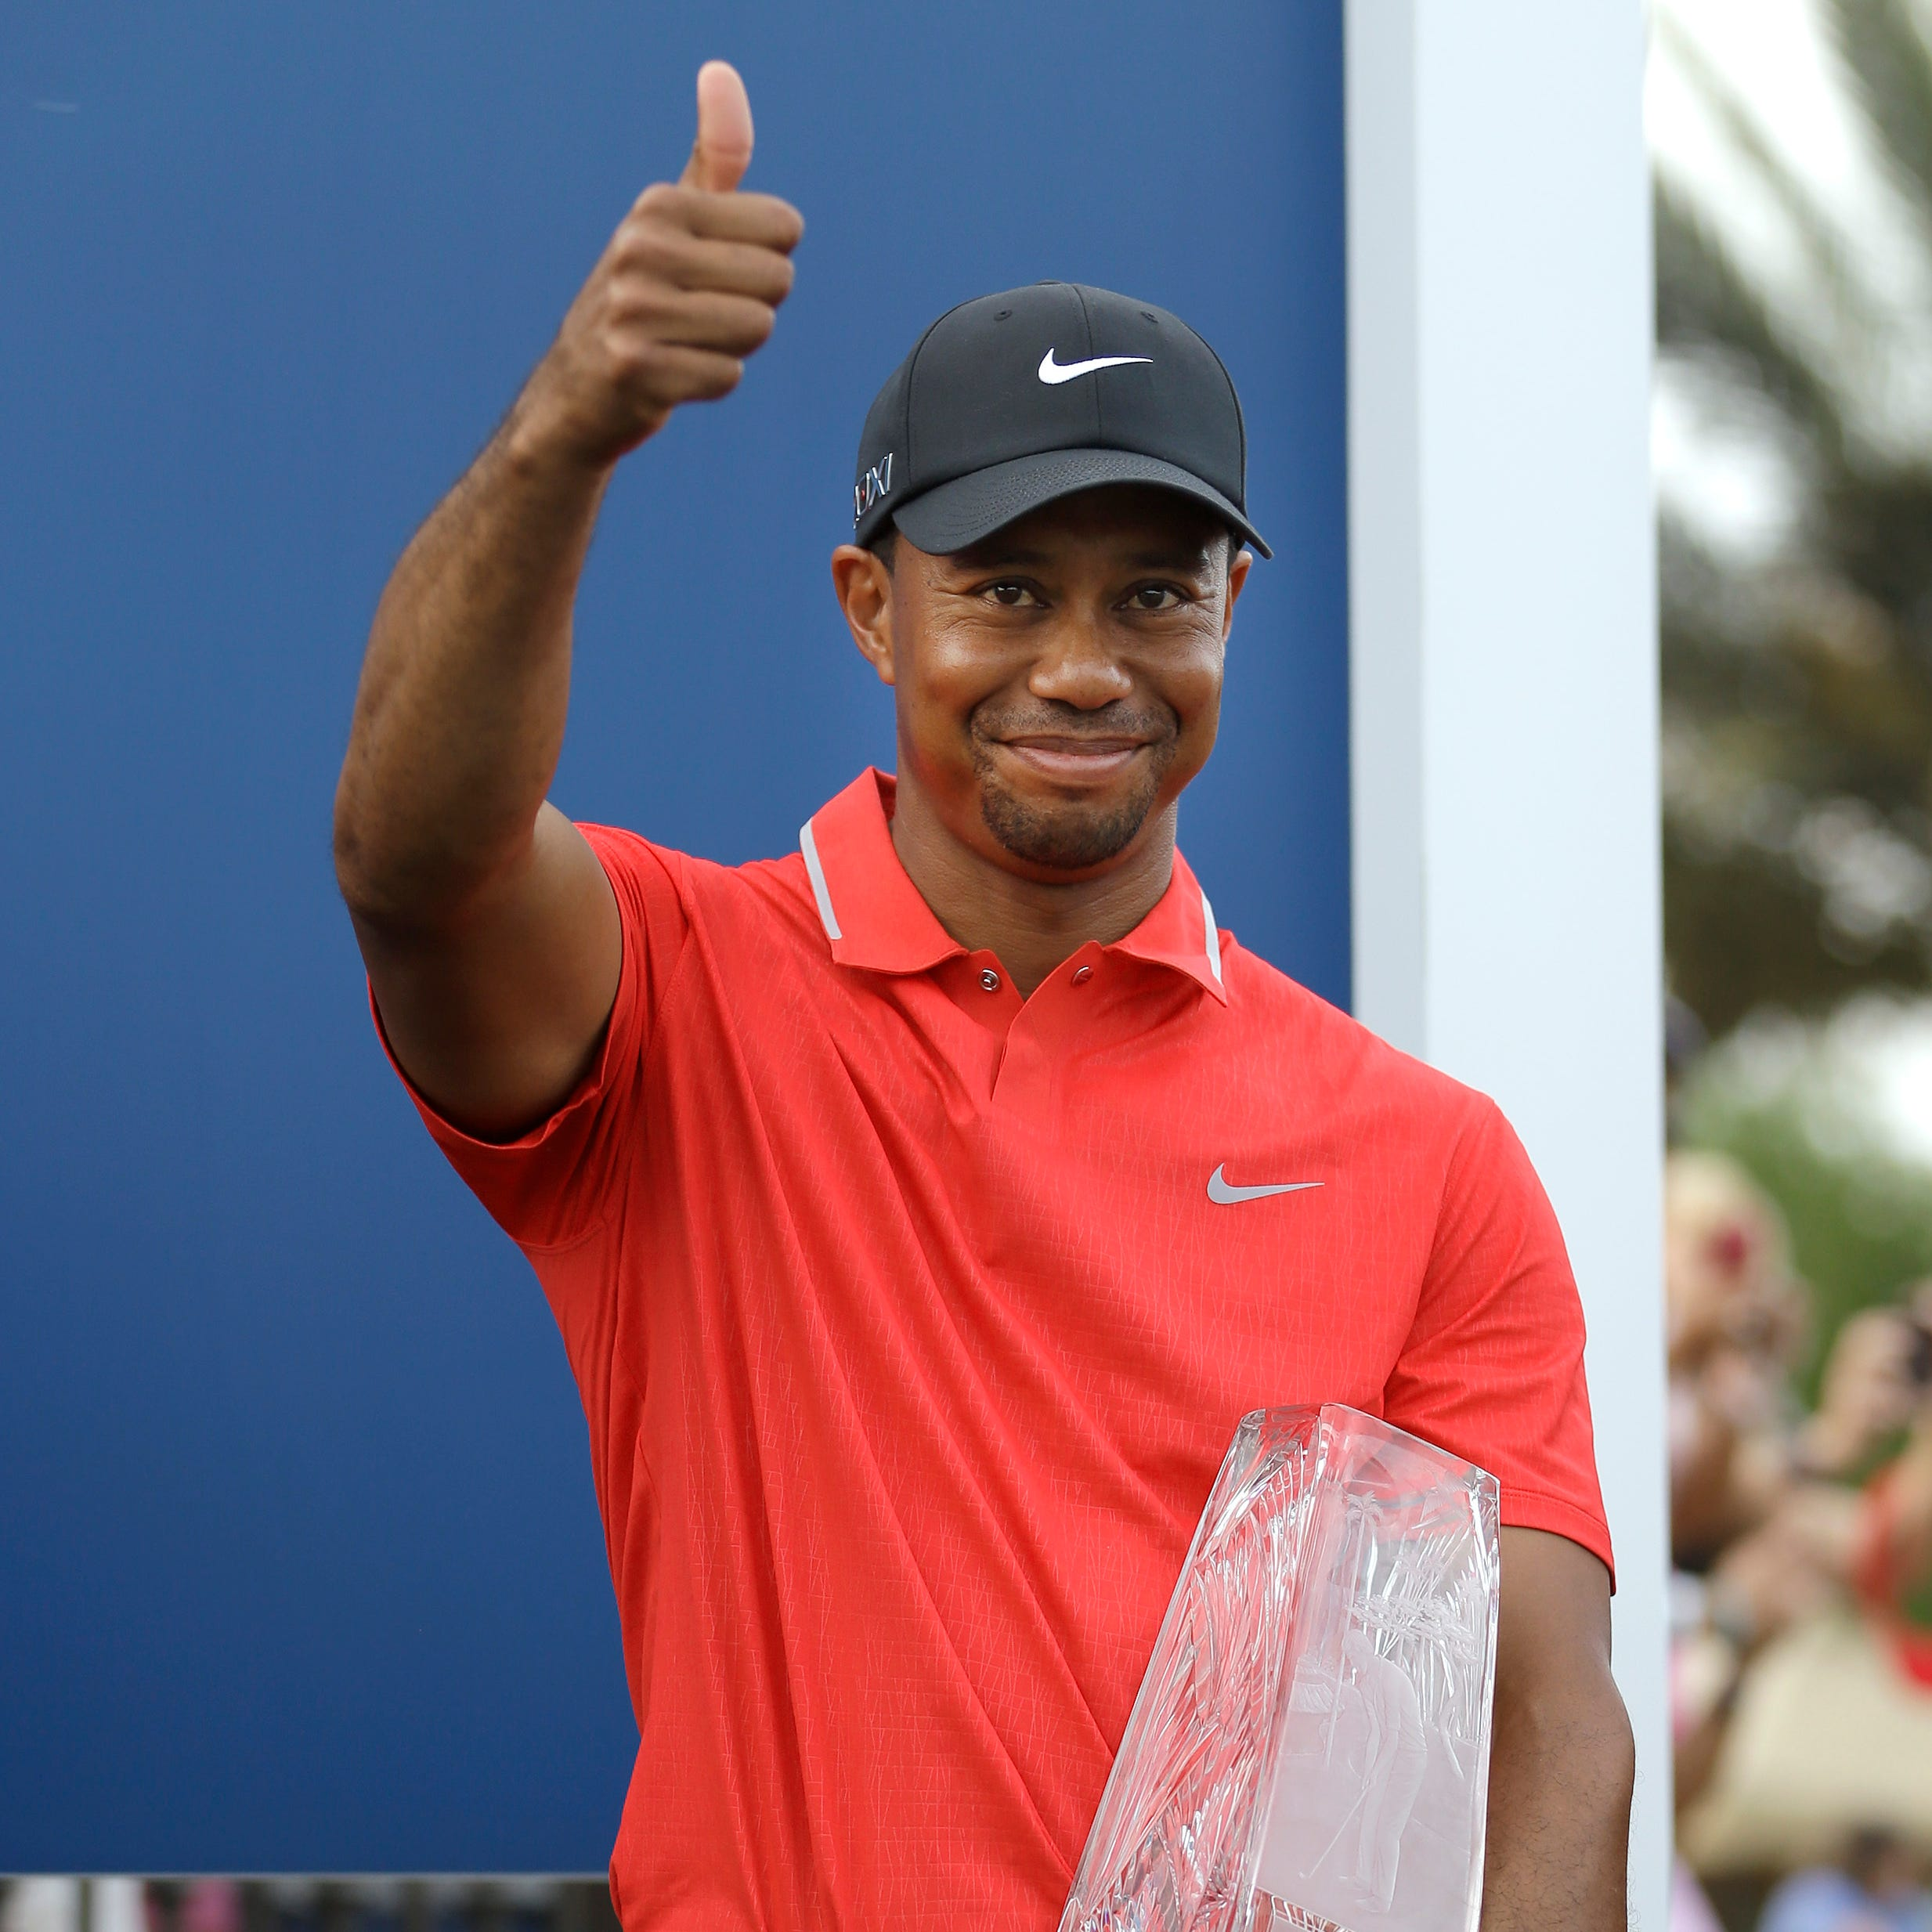 Niyo: Roar restored, Tiger Woods looks capable of chasing down Jack Nicklaus' record